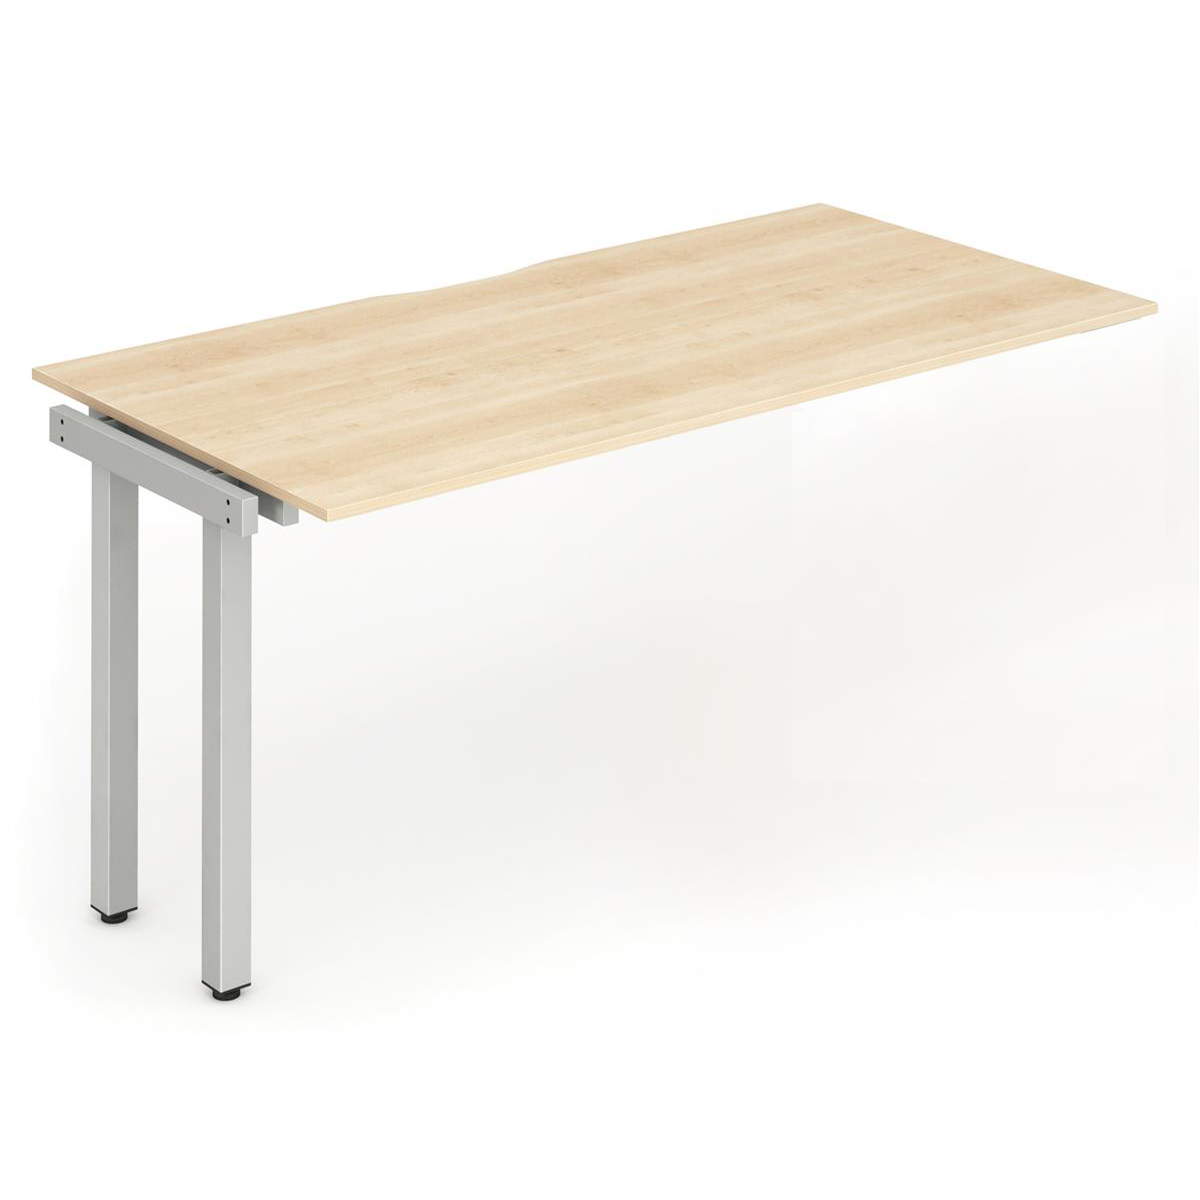 Trexus Bench Desk Single Extension Silver Leg 1200x800mm Maple Ref BE336